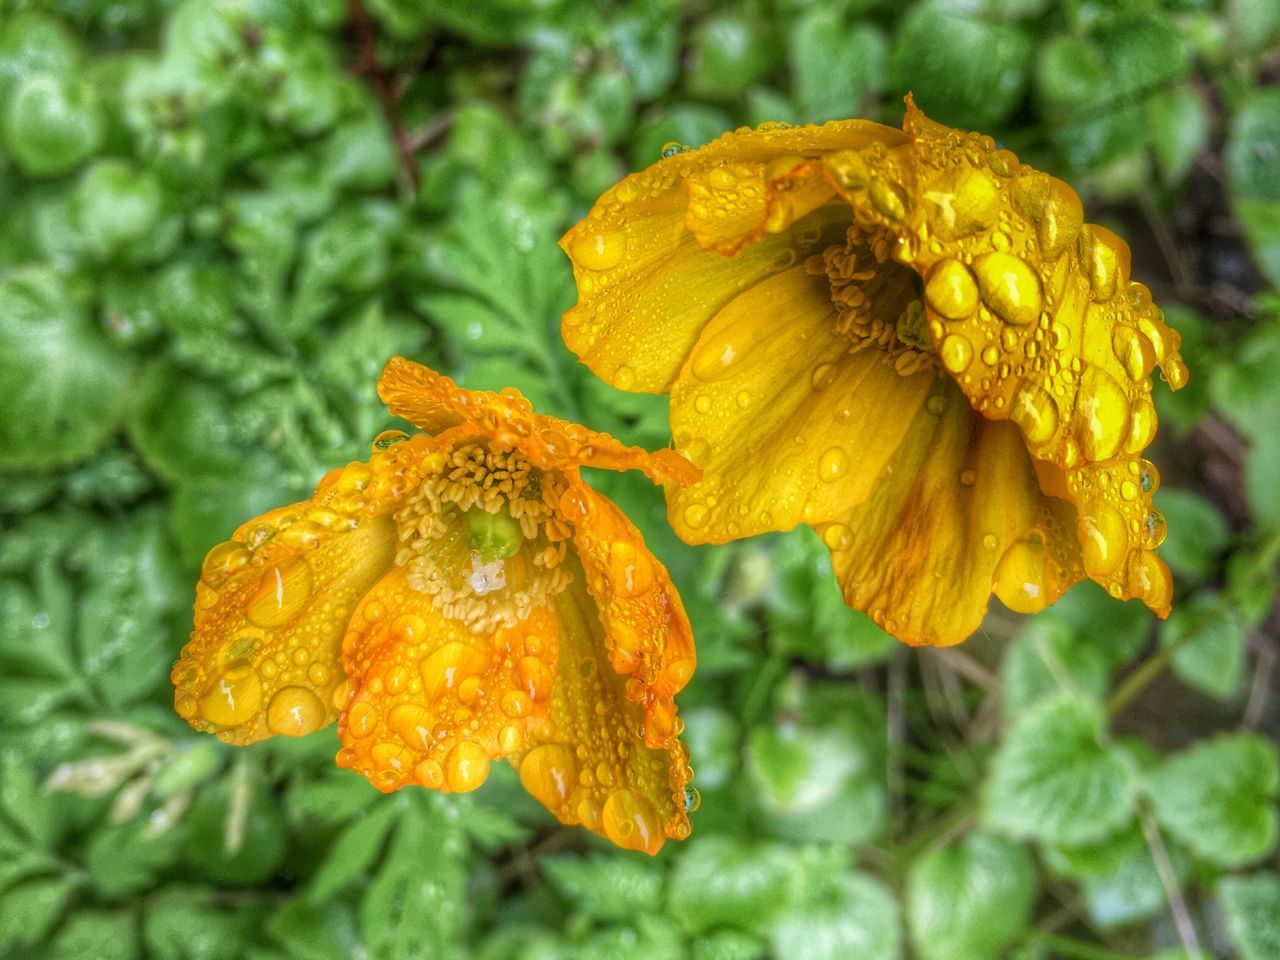 flower, growth, nature, drop, beauty in nature, fragility, plant, green color, petal, yellow, wet, close-up, freshness, no people, outdoors, day, focus on foreground, blooming, flower head, water, leaf